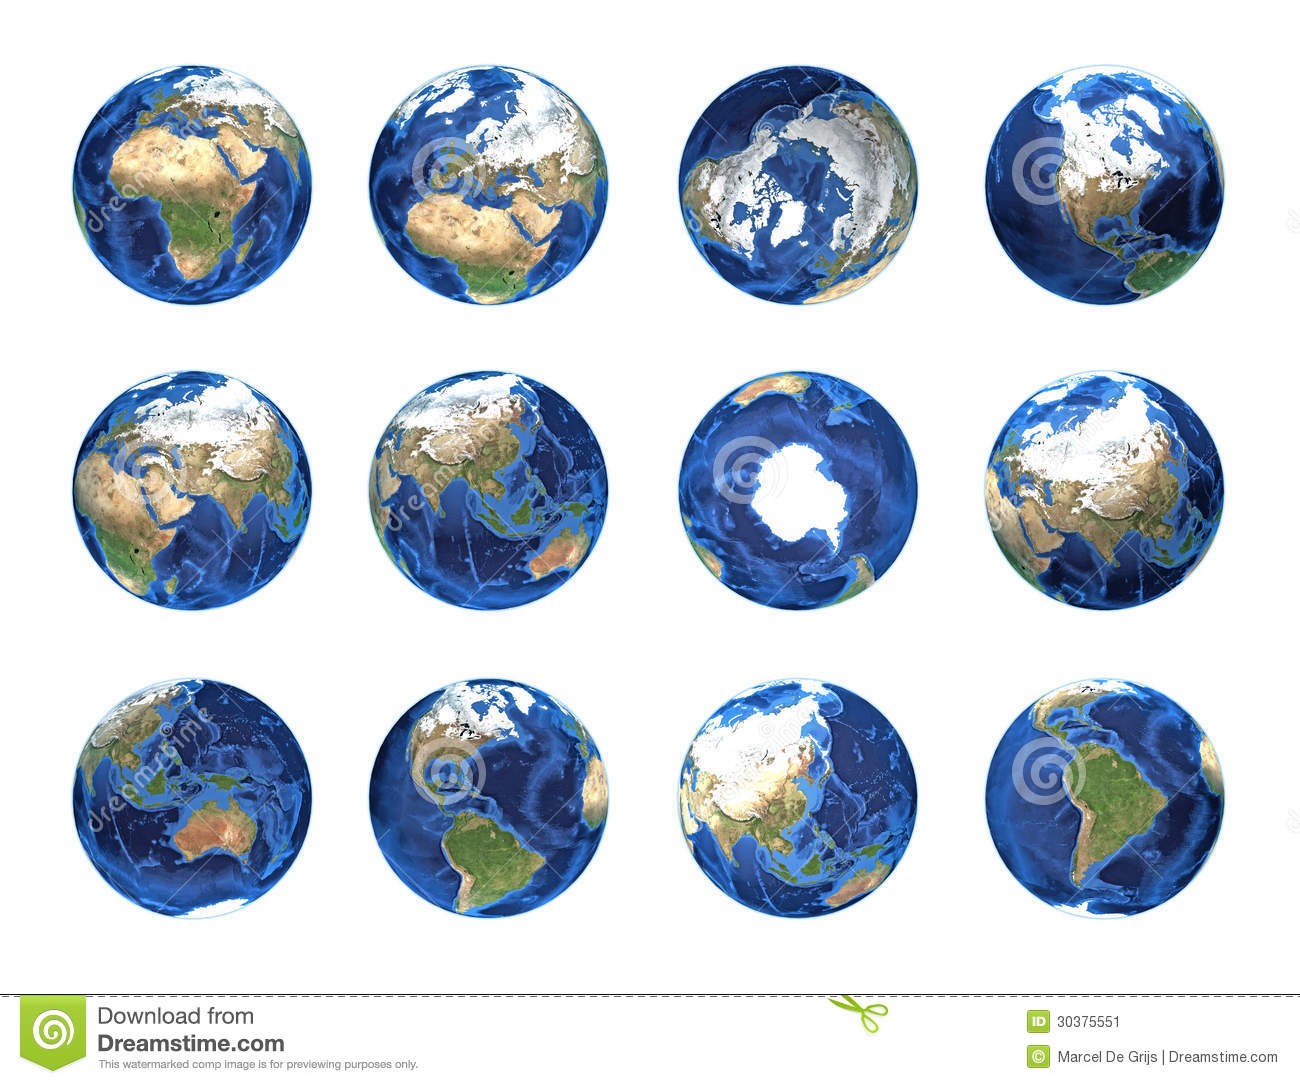 continental united states map with Stock Image Pla  Earth Globe Positions Different Angles Showing All Continents Some  Ponents Image Provided Courtesy Image30375551 on Andaz Fifth Avenue further Chatham Bars Inn likewise Point Roberts Washington Its Harder To Get To Than You Think as well Trails of the Oconee National Forest as well Ladera Resort St Lucia.